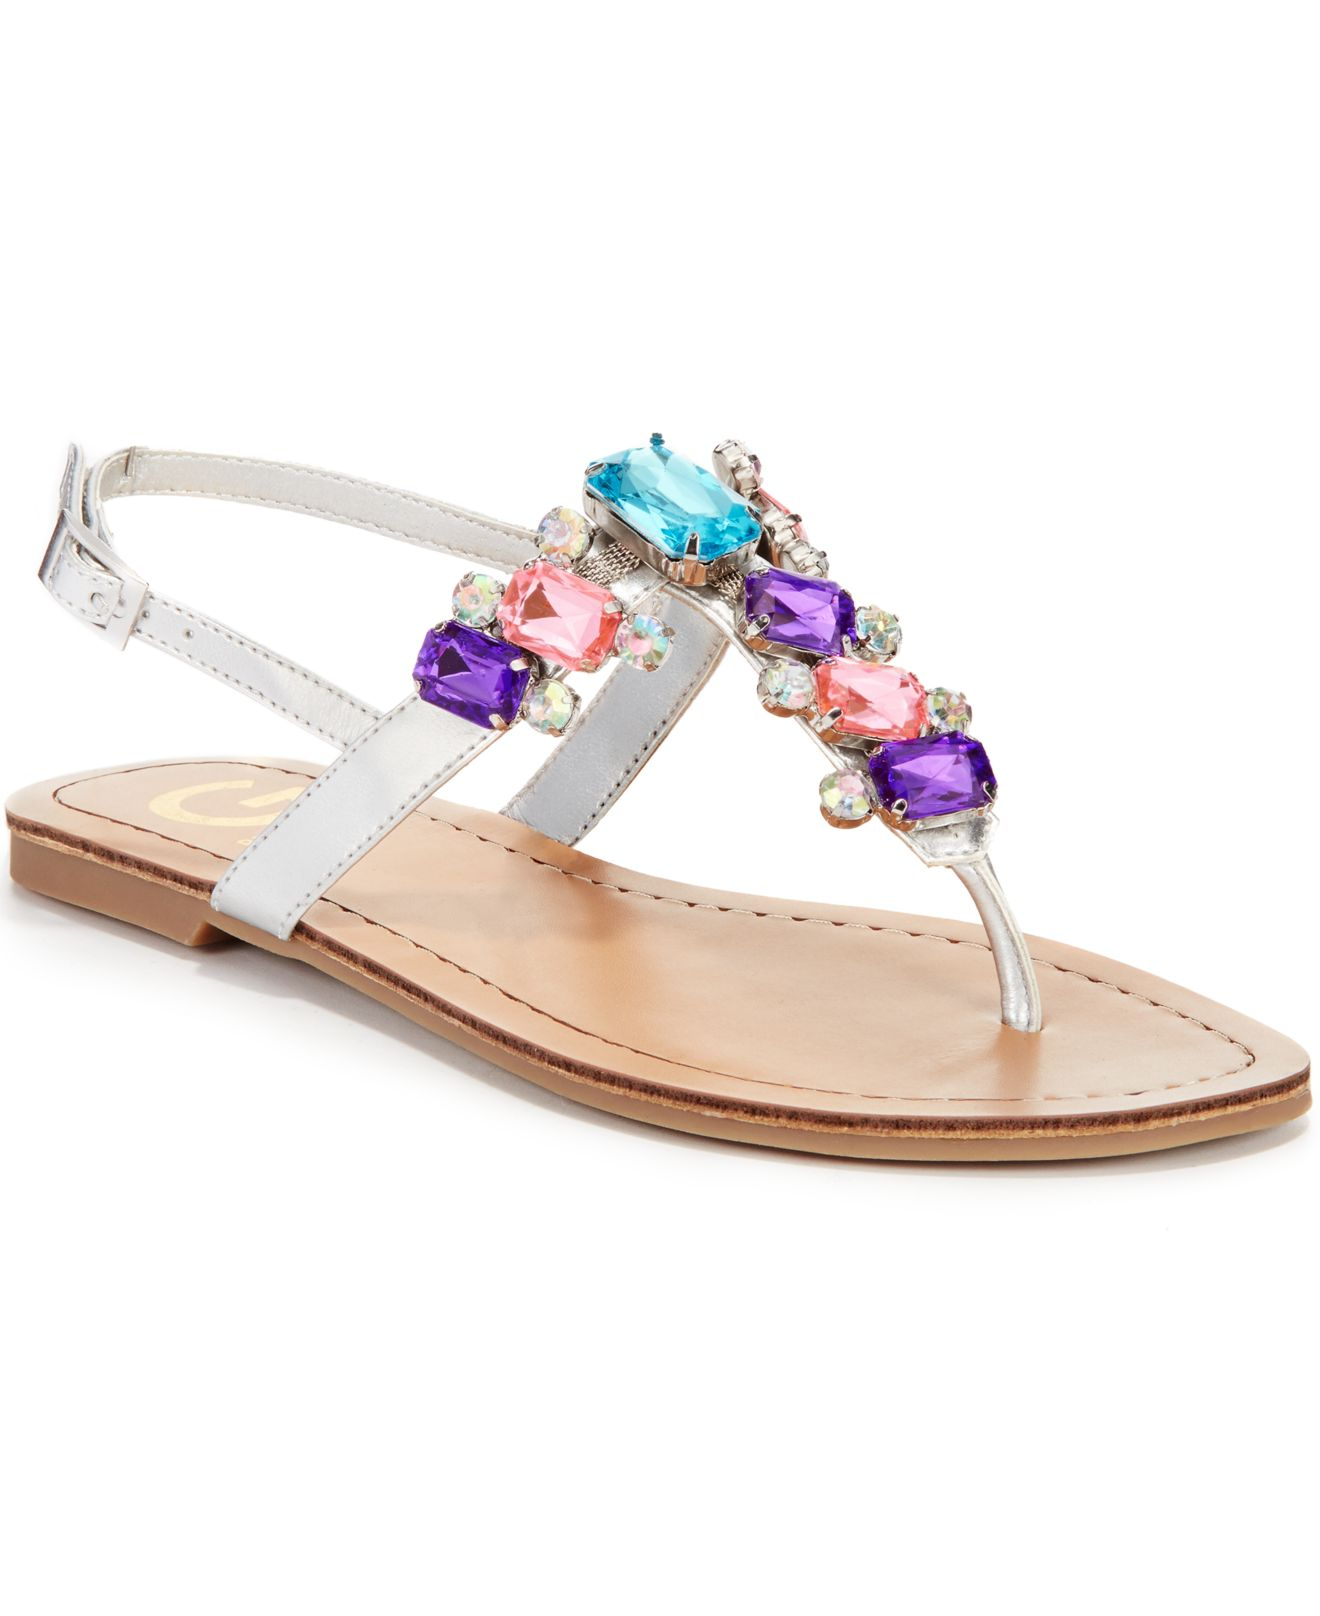 e3715dbdf1edc Lyst - G by Guess Kyli Jeweled Flat Sandals in Metallic